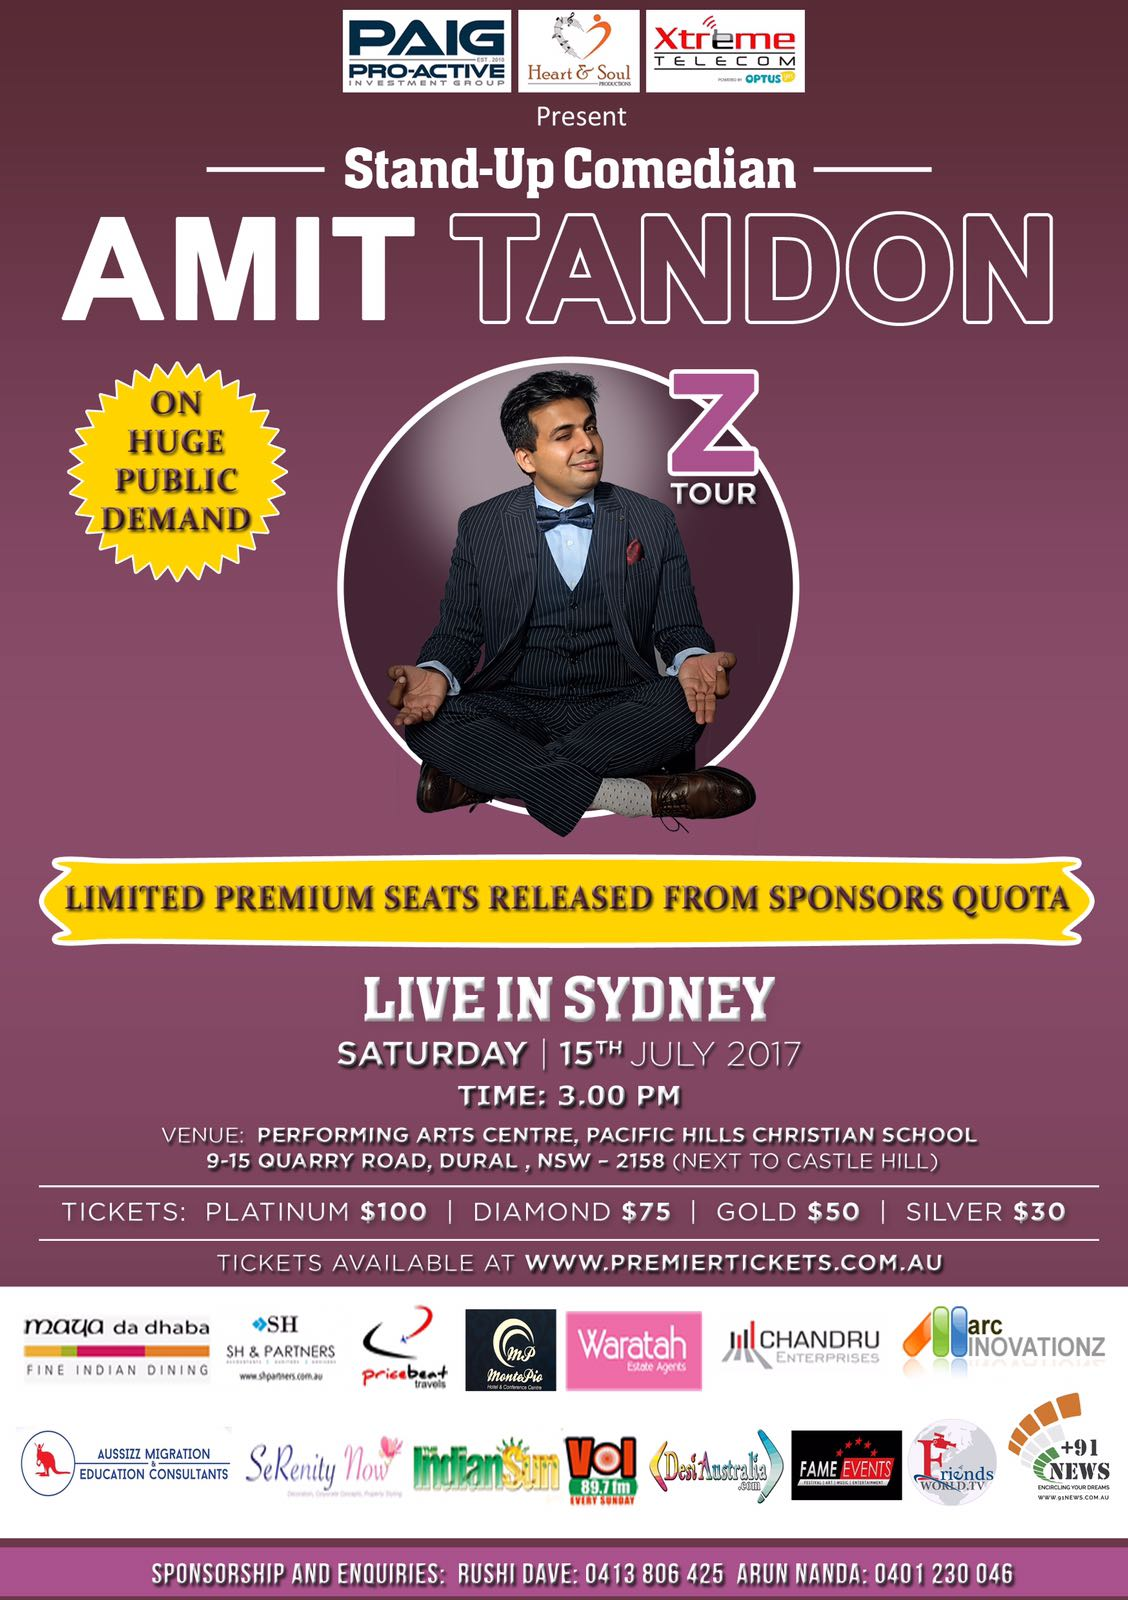 Amit Tandon The Married Guy Stand Up Comedian Live in Sydney (3:00 PM)